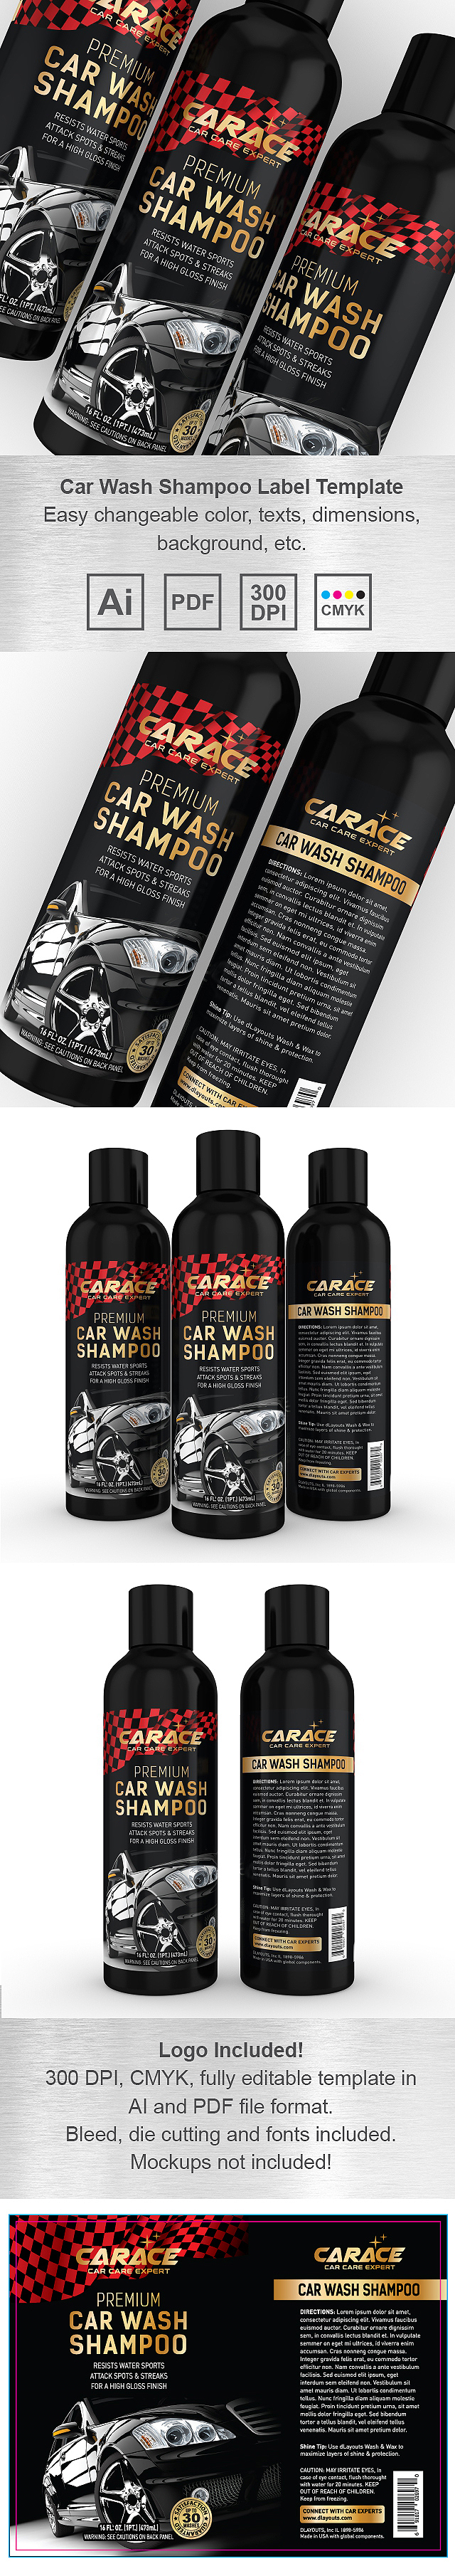 Car Wash Shampoo Label Template